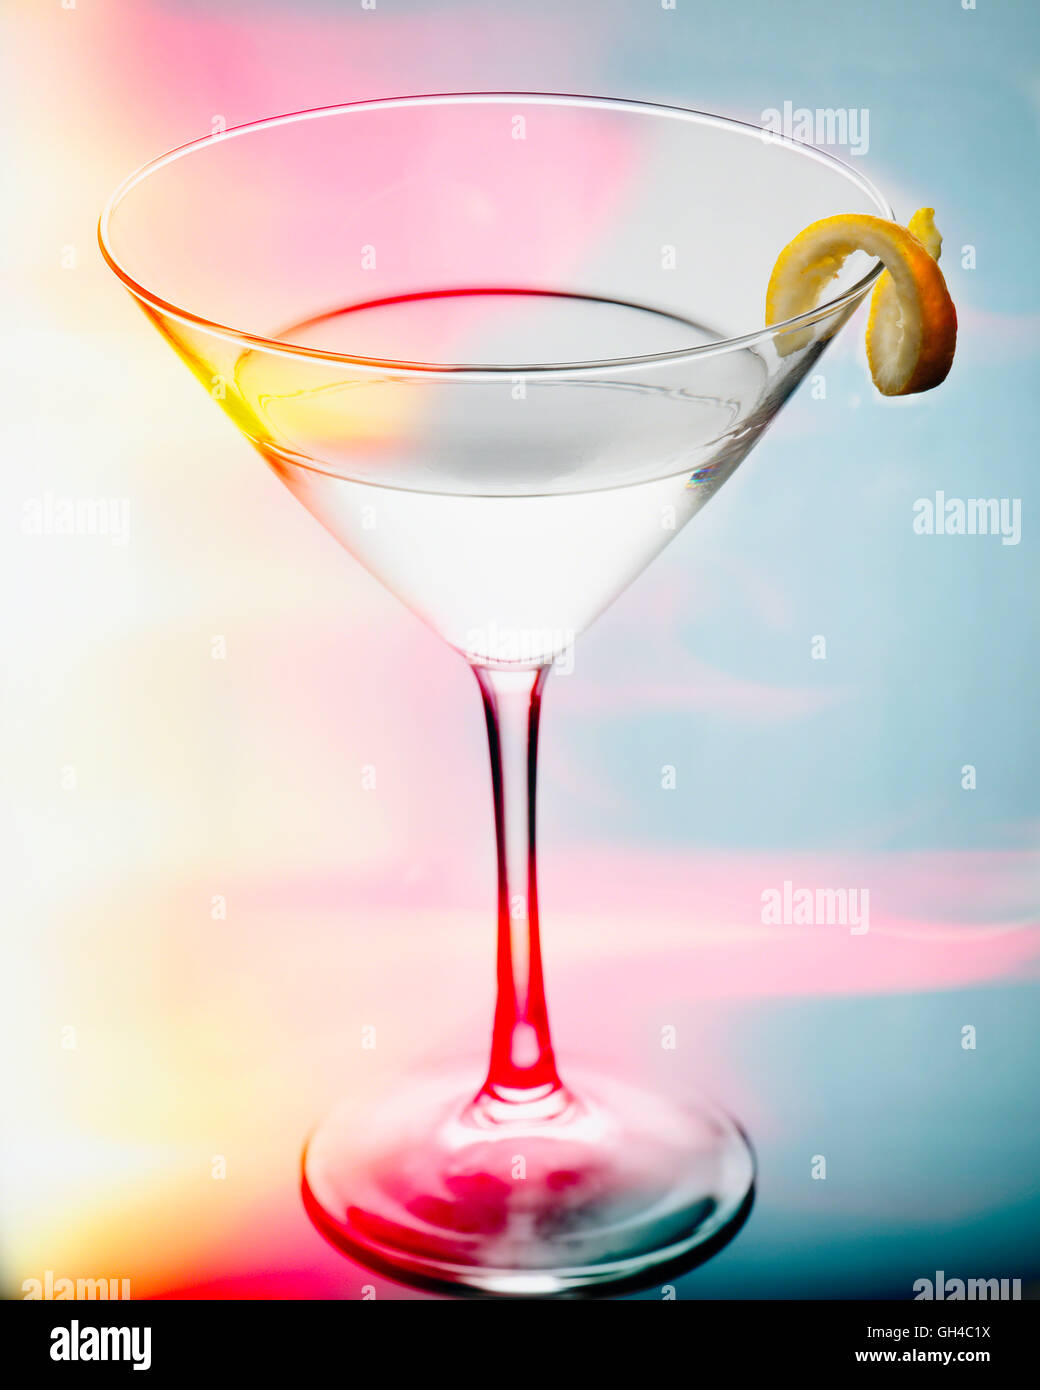 Close Up View of a Glass of Martini with a Twist in a Colorful Reflected Light - Stock Image